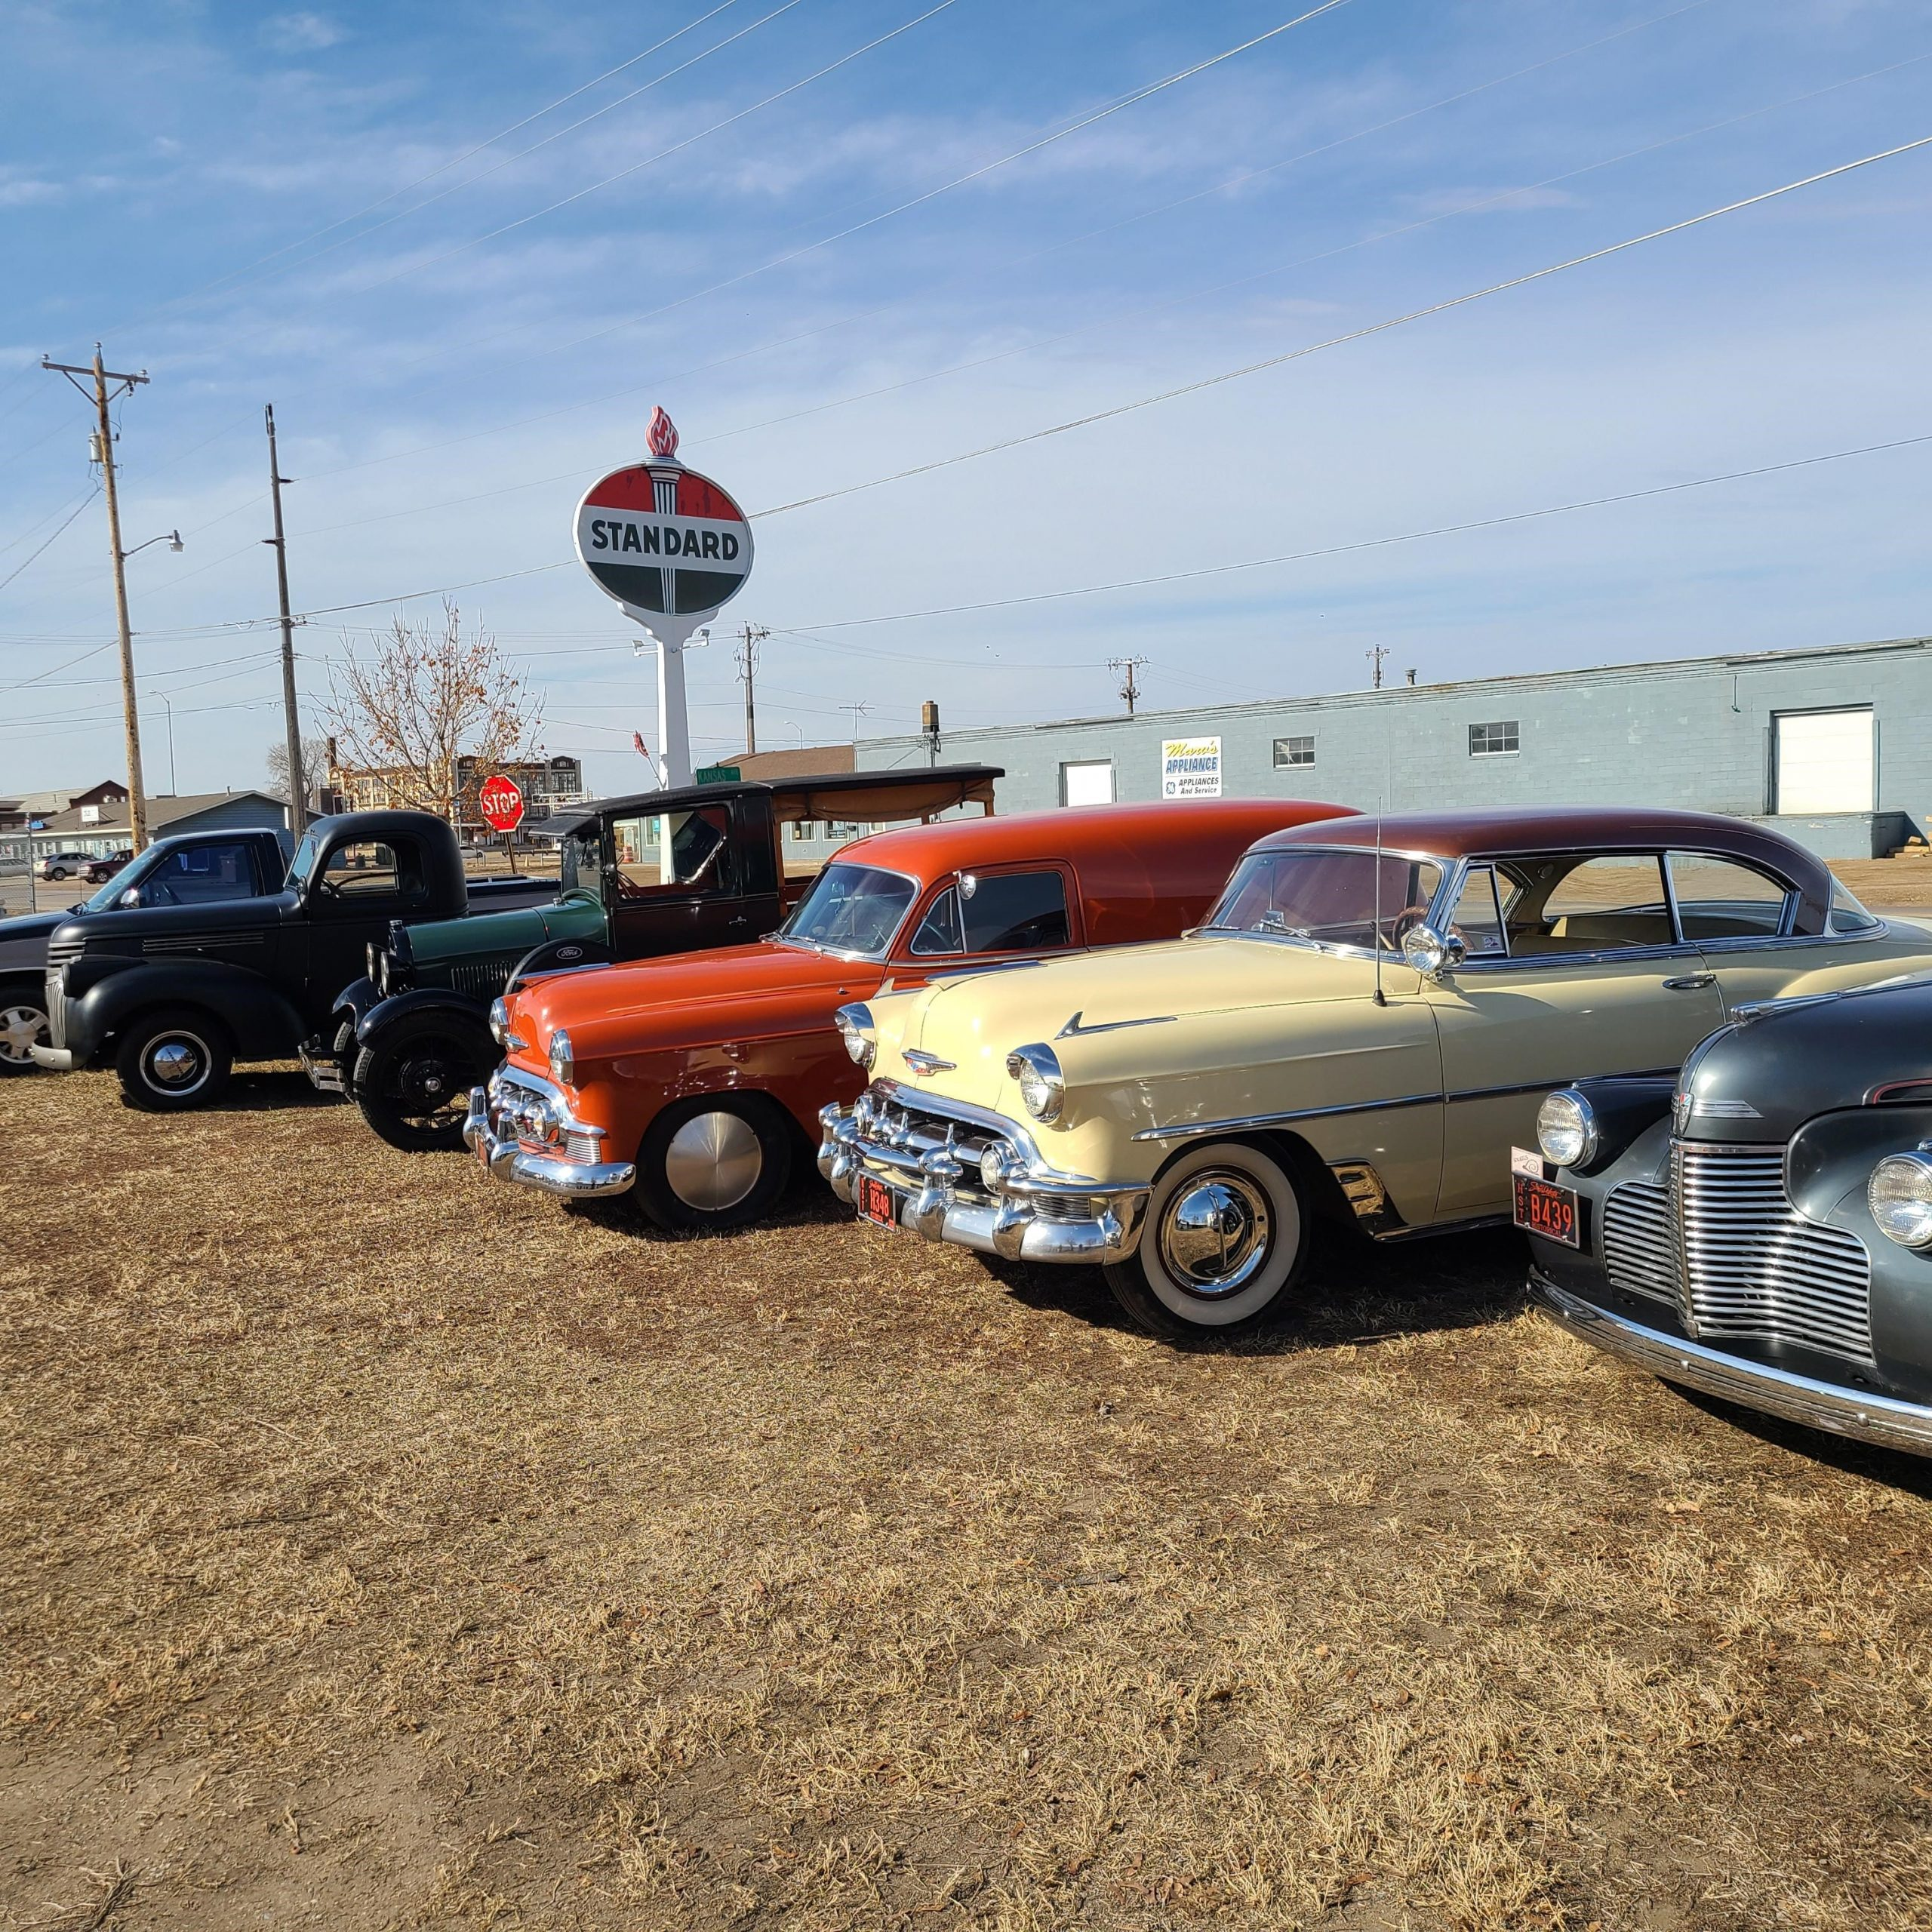 4/26 Bowar Classic Car Collection Online Only Auction. Huron, SD